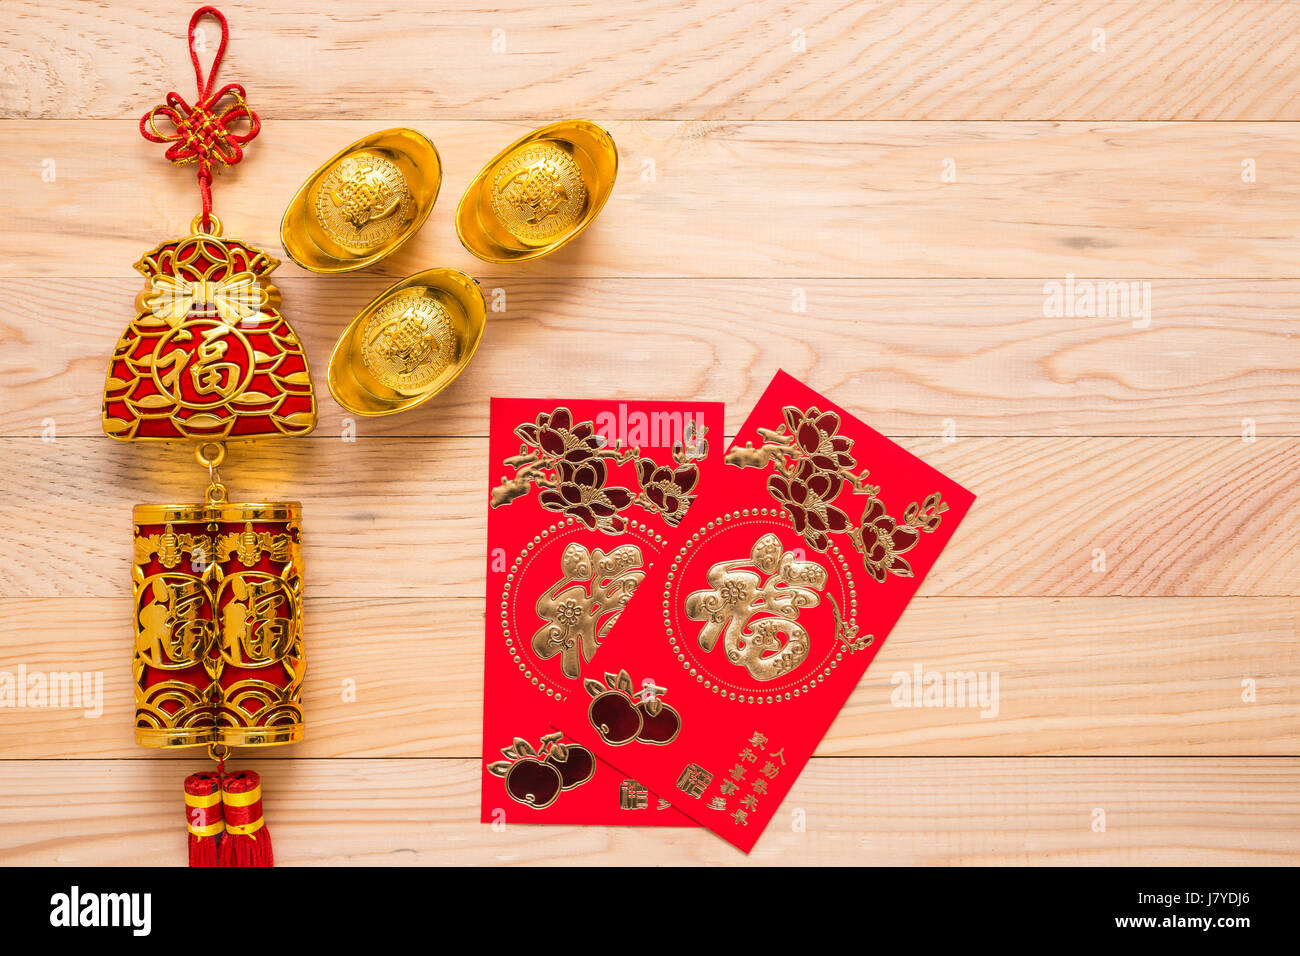 Top View Gold And Red Chinese New Year Decoration On Wooden Stock